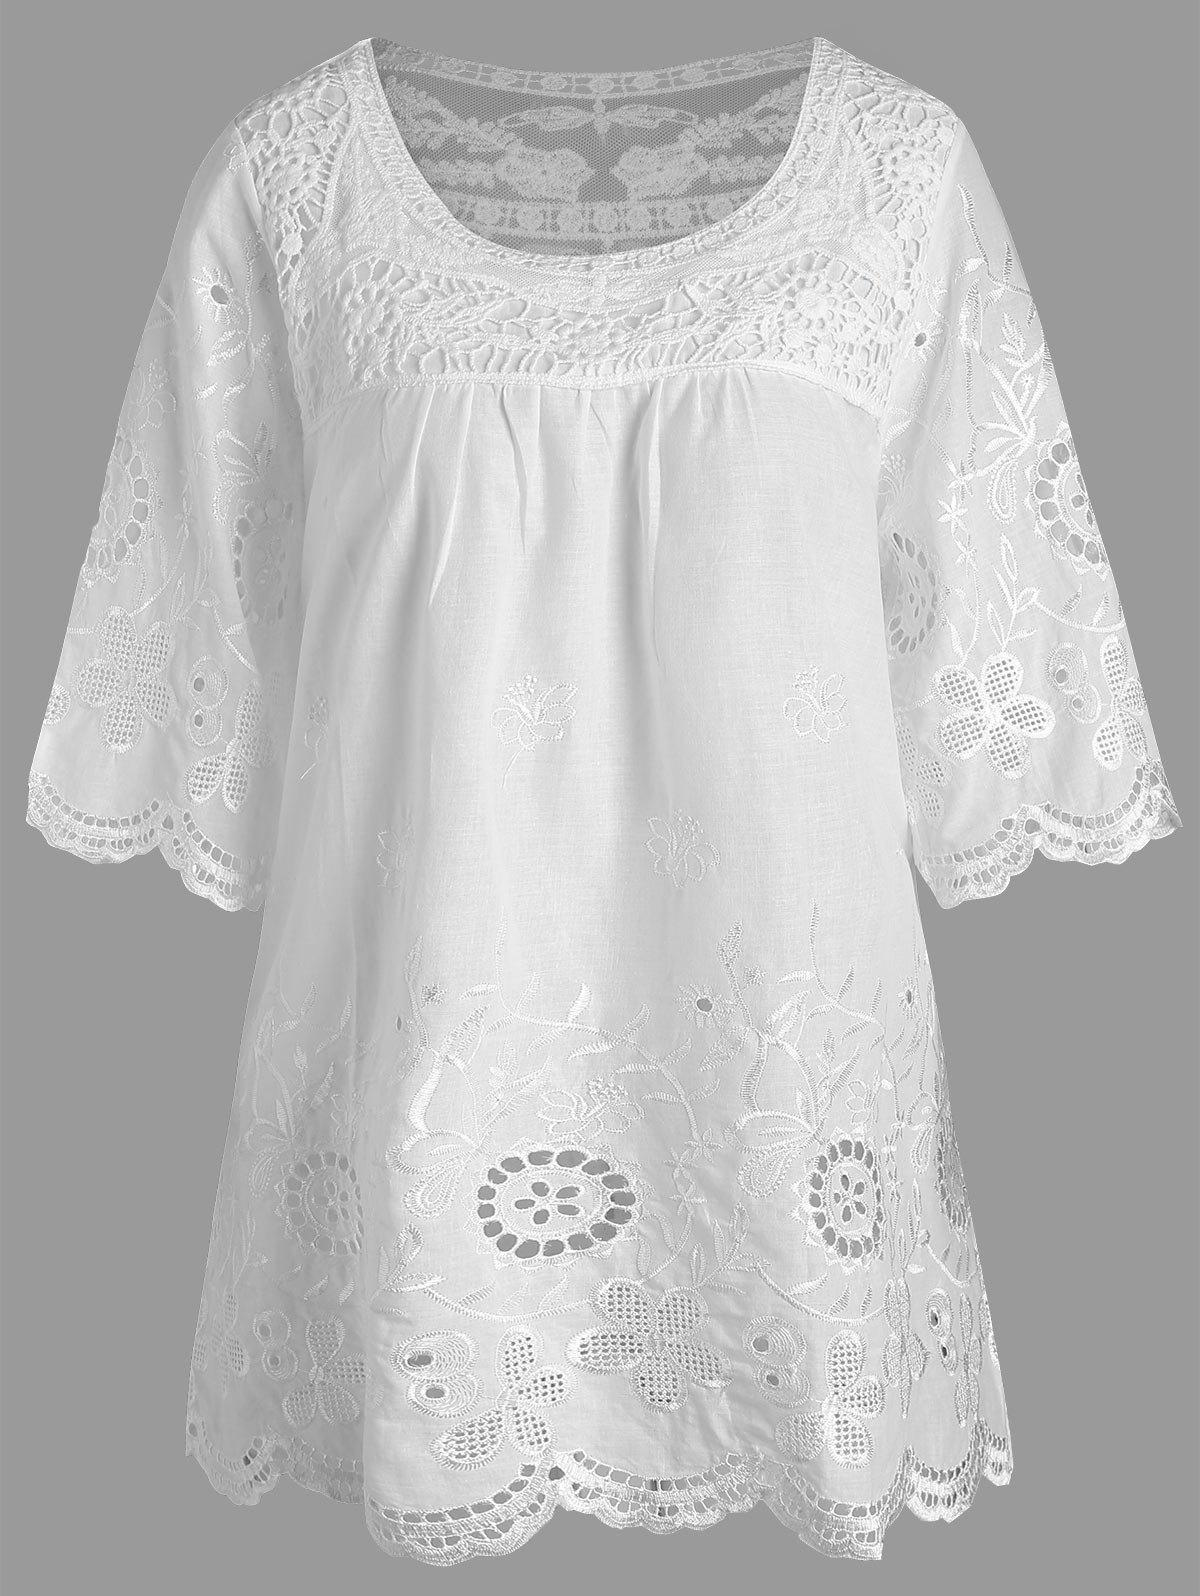 Embroidered Plus Size Tunic TopWOMEN<br><br>Size: 3XL; Color: WHITE; Material: Polyester; Shirt Length: Long; Sleeve Length: Three Quarter; Collar: Round Neck; Style: Casual; Season: Fall,Summer; Pattern Type: Solid; Weight: 0.2200kg; Package Contents: 1 x Top;